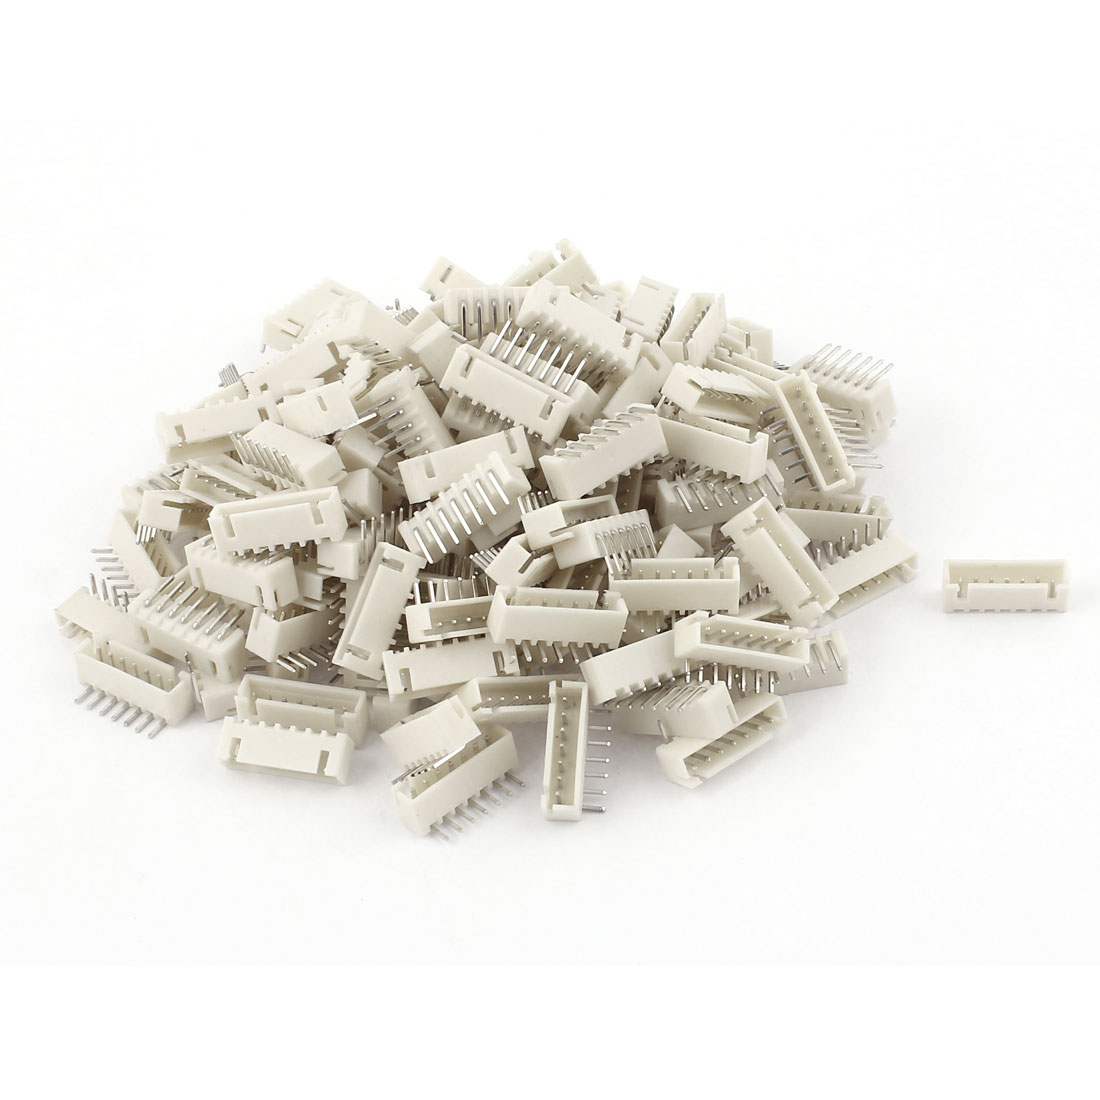 160pcs 2.54mm Pitch Right Angle 7 Pins JST Header Socket Male Connector